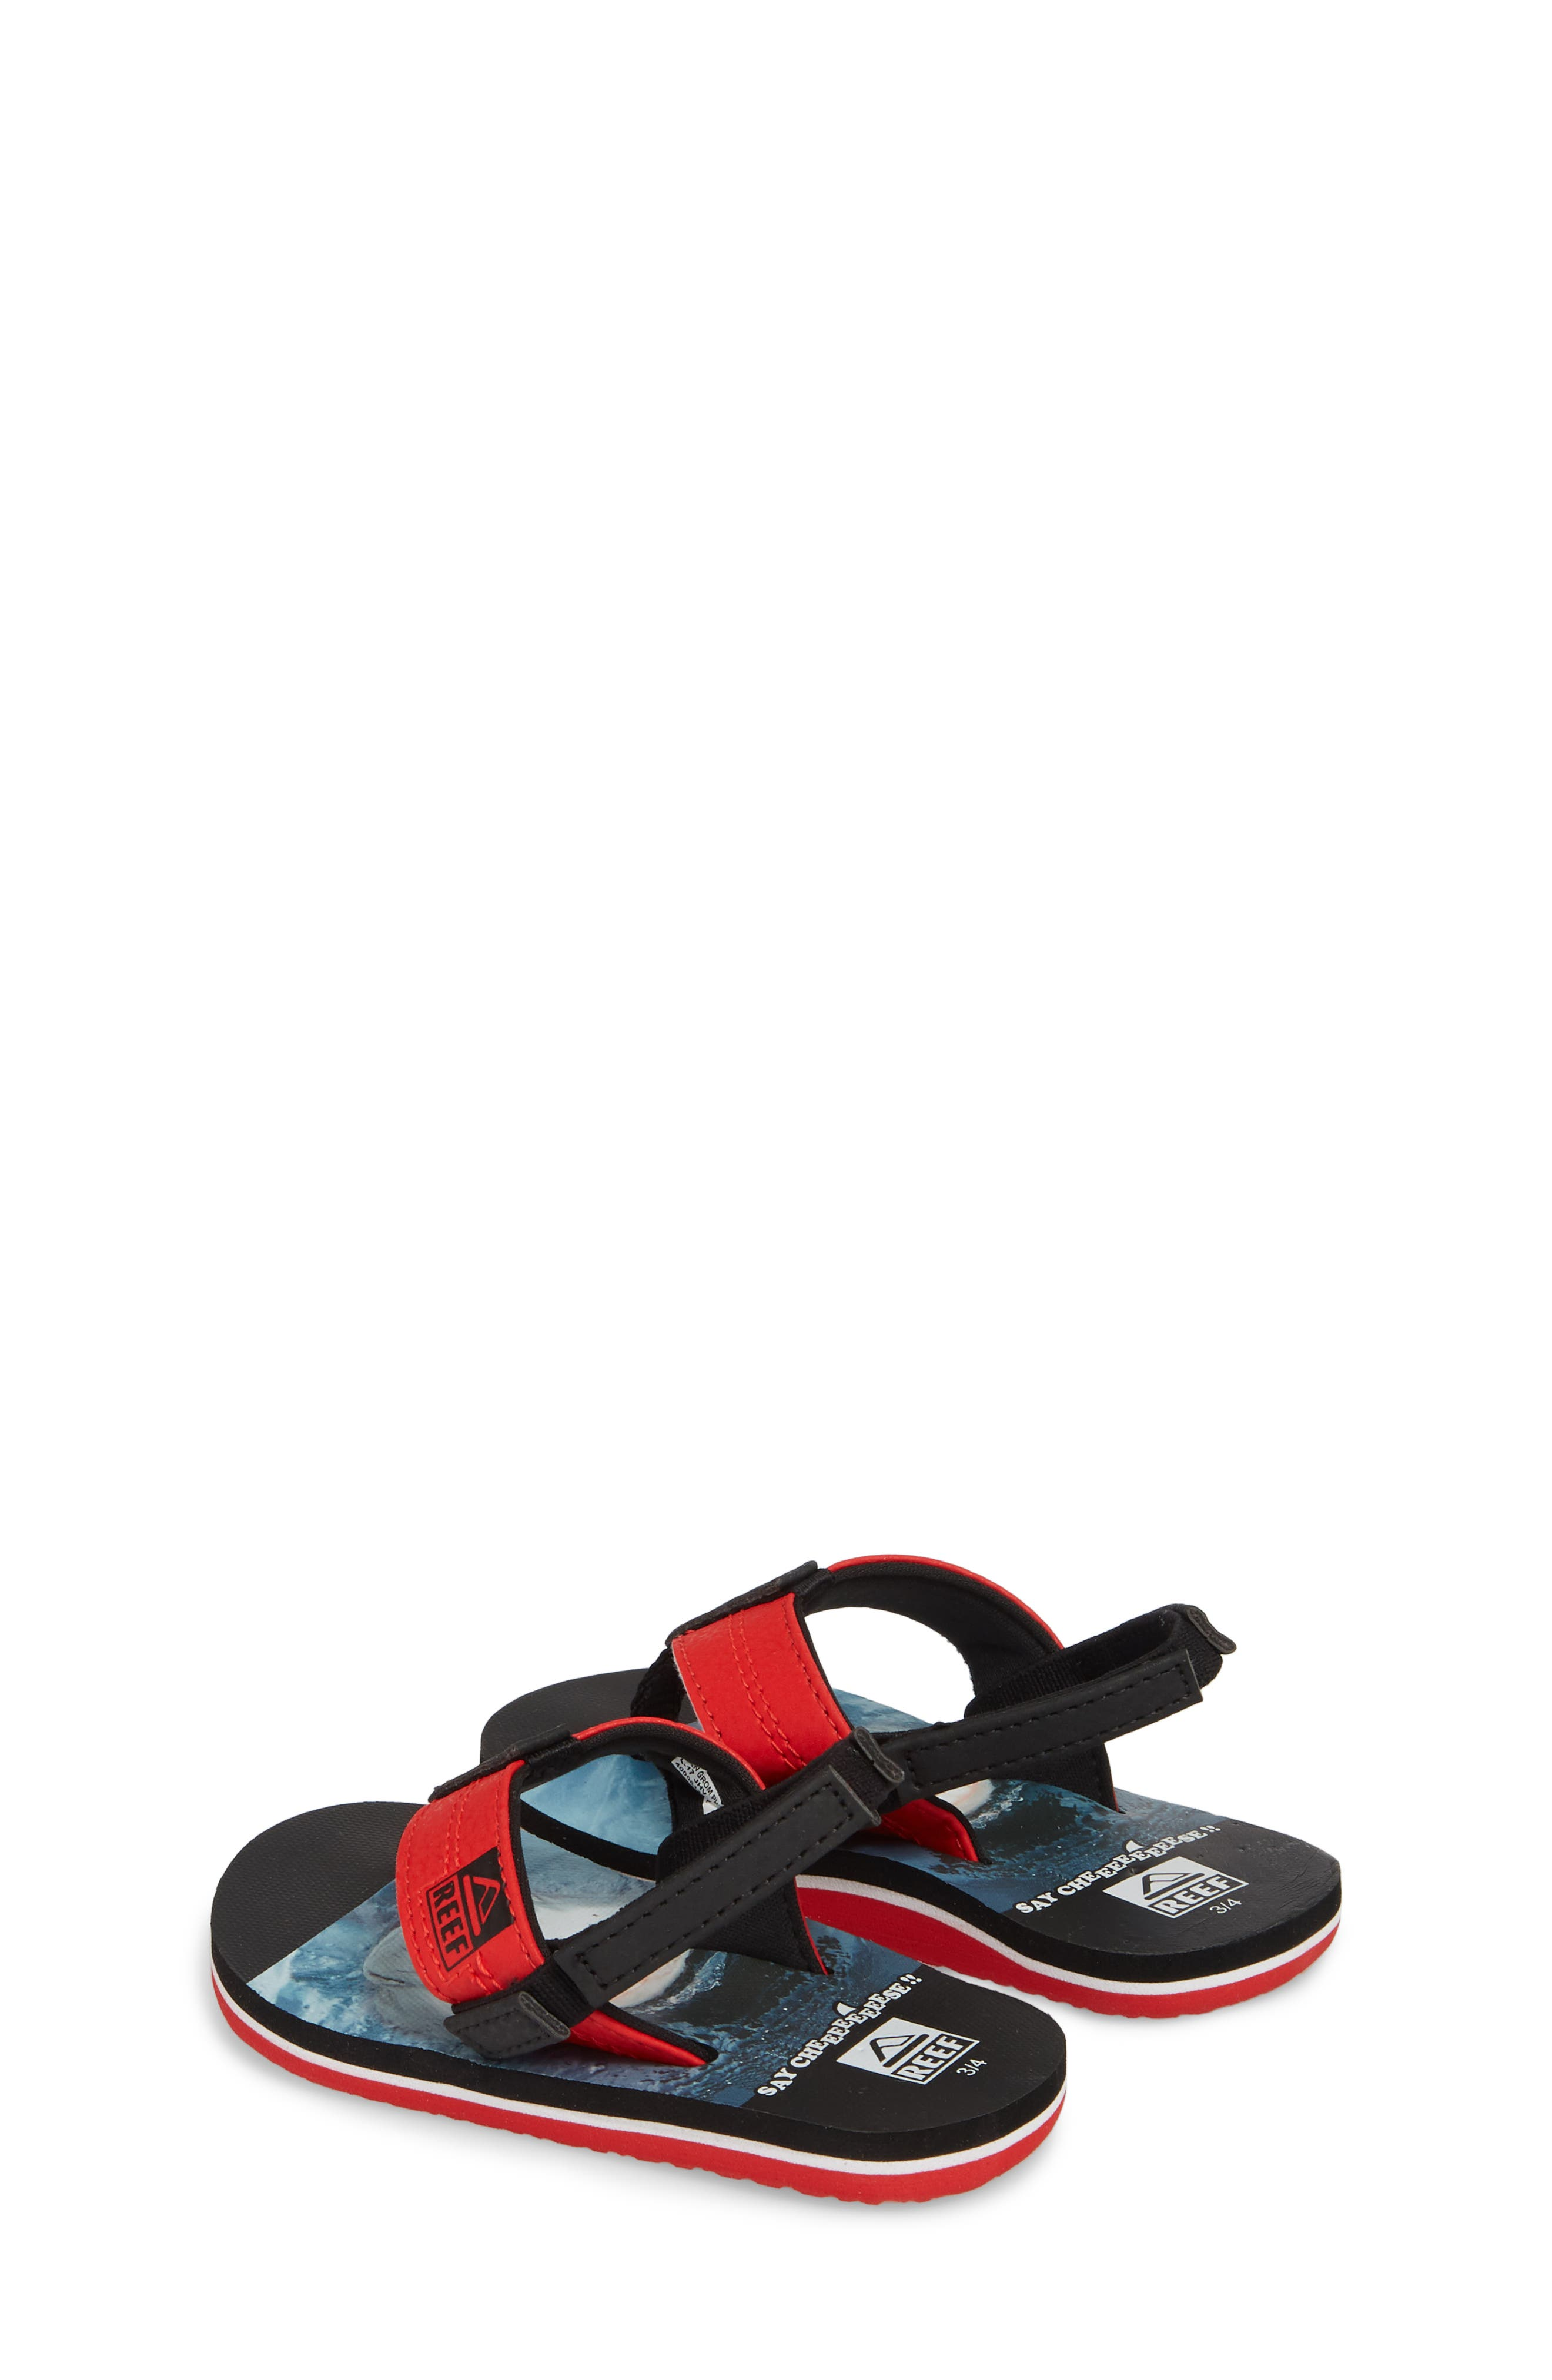 Grom Photo Print Flip Flop,                             Alternate thumbnail 2, color,                             Red